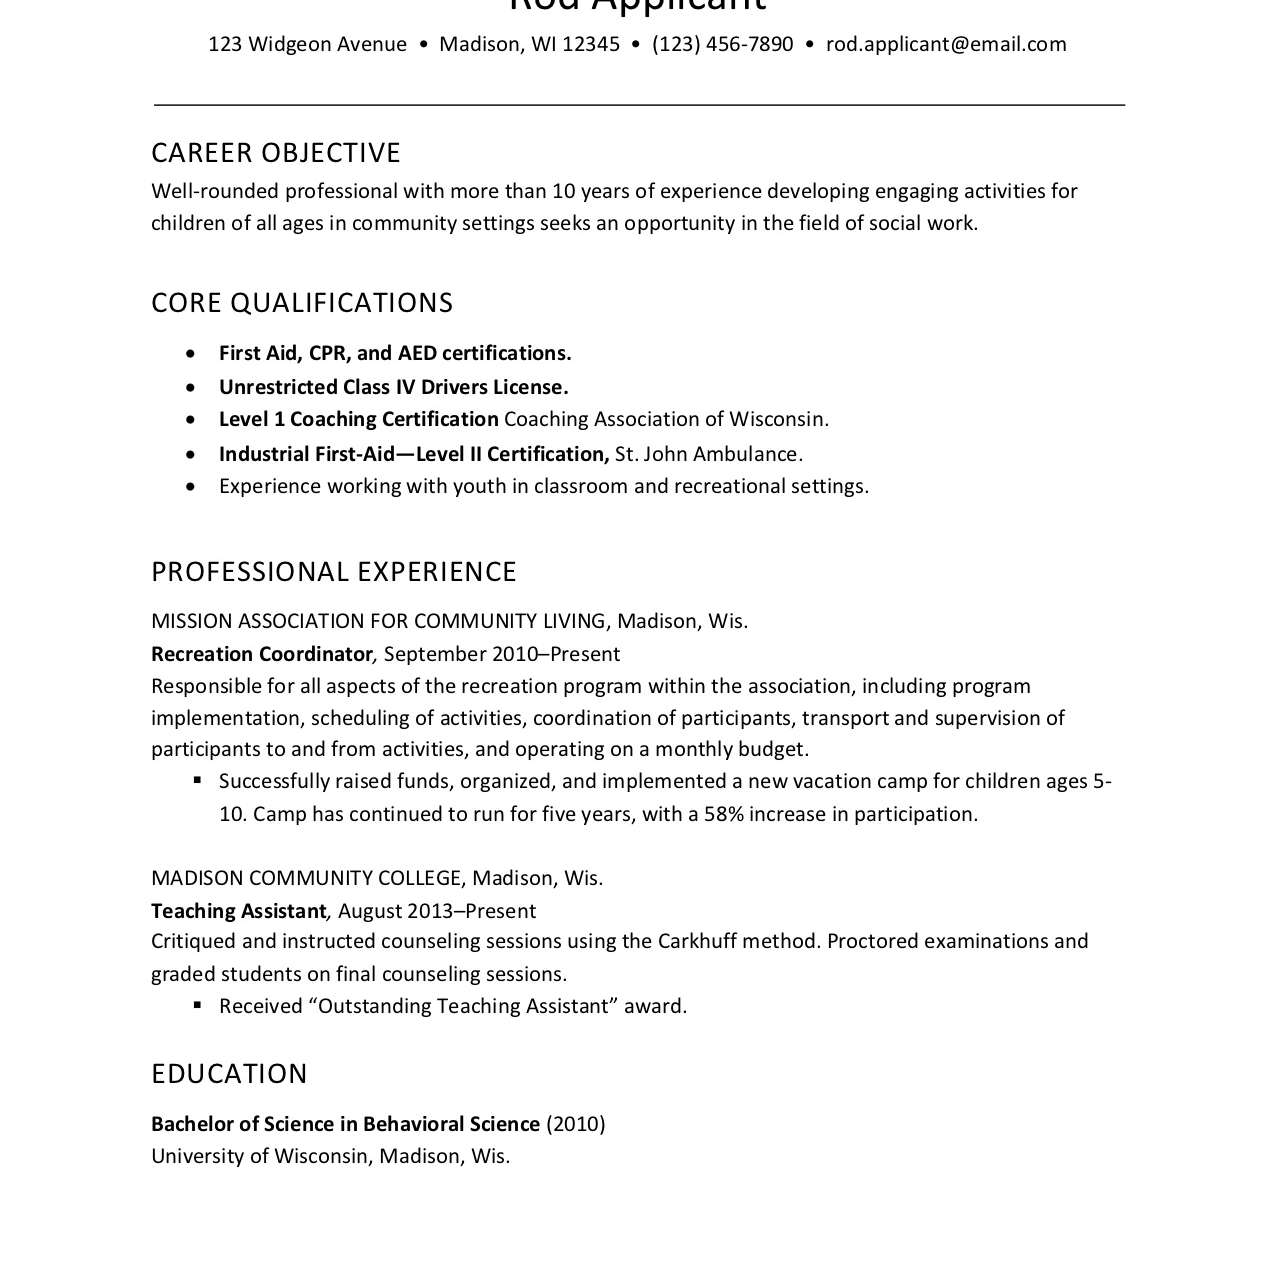 resume example for childcare social services worker samples positions accounting sample Resume Resume Samples For Childcare Positions